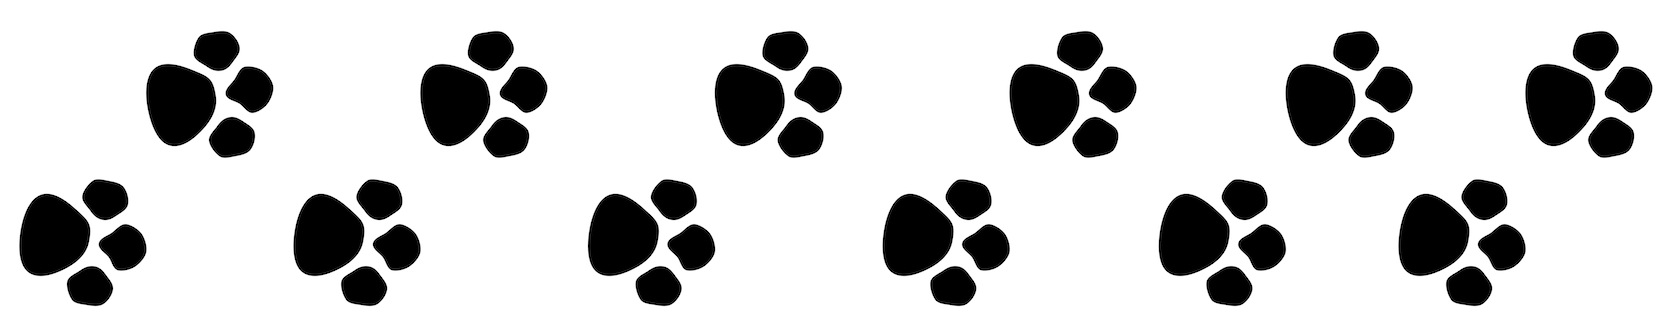 Paw print trail clipart kid